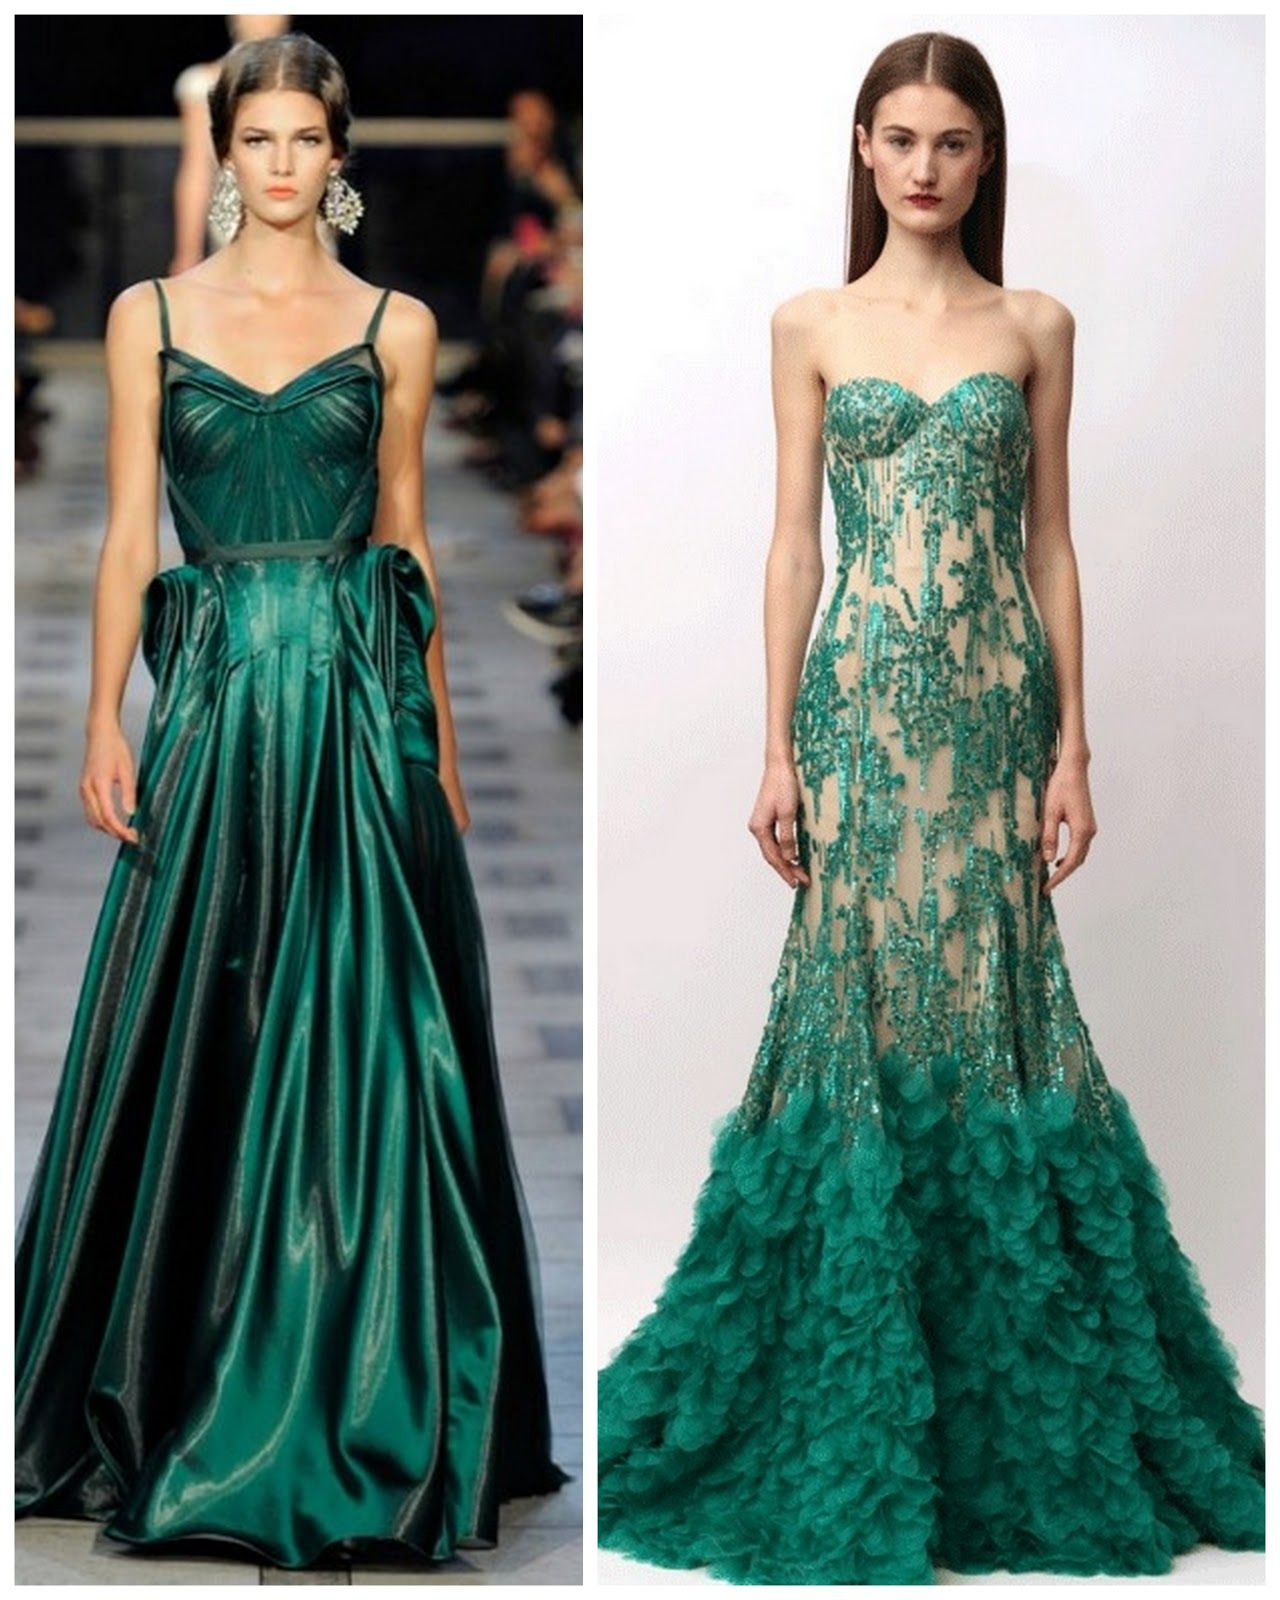 Emerald green wedding dress oh vera if you still like green emerald green wedding dress oh vera if you still like green junglespirit Image collections